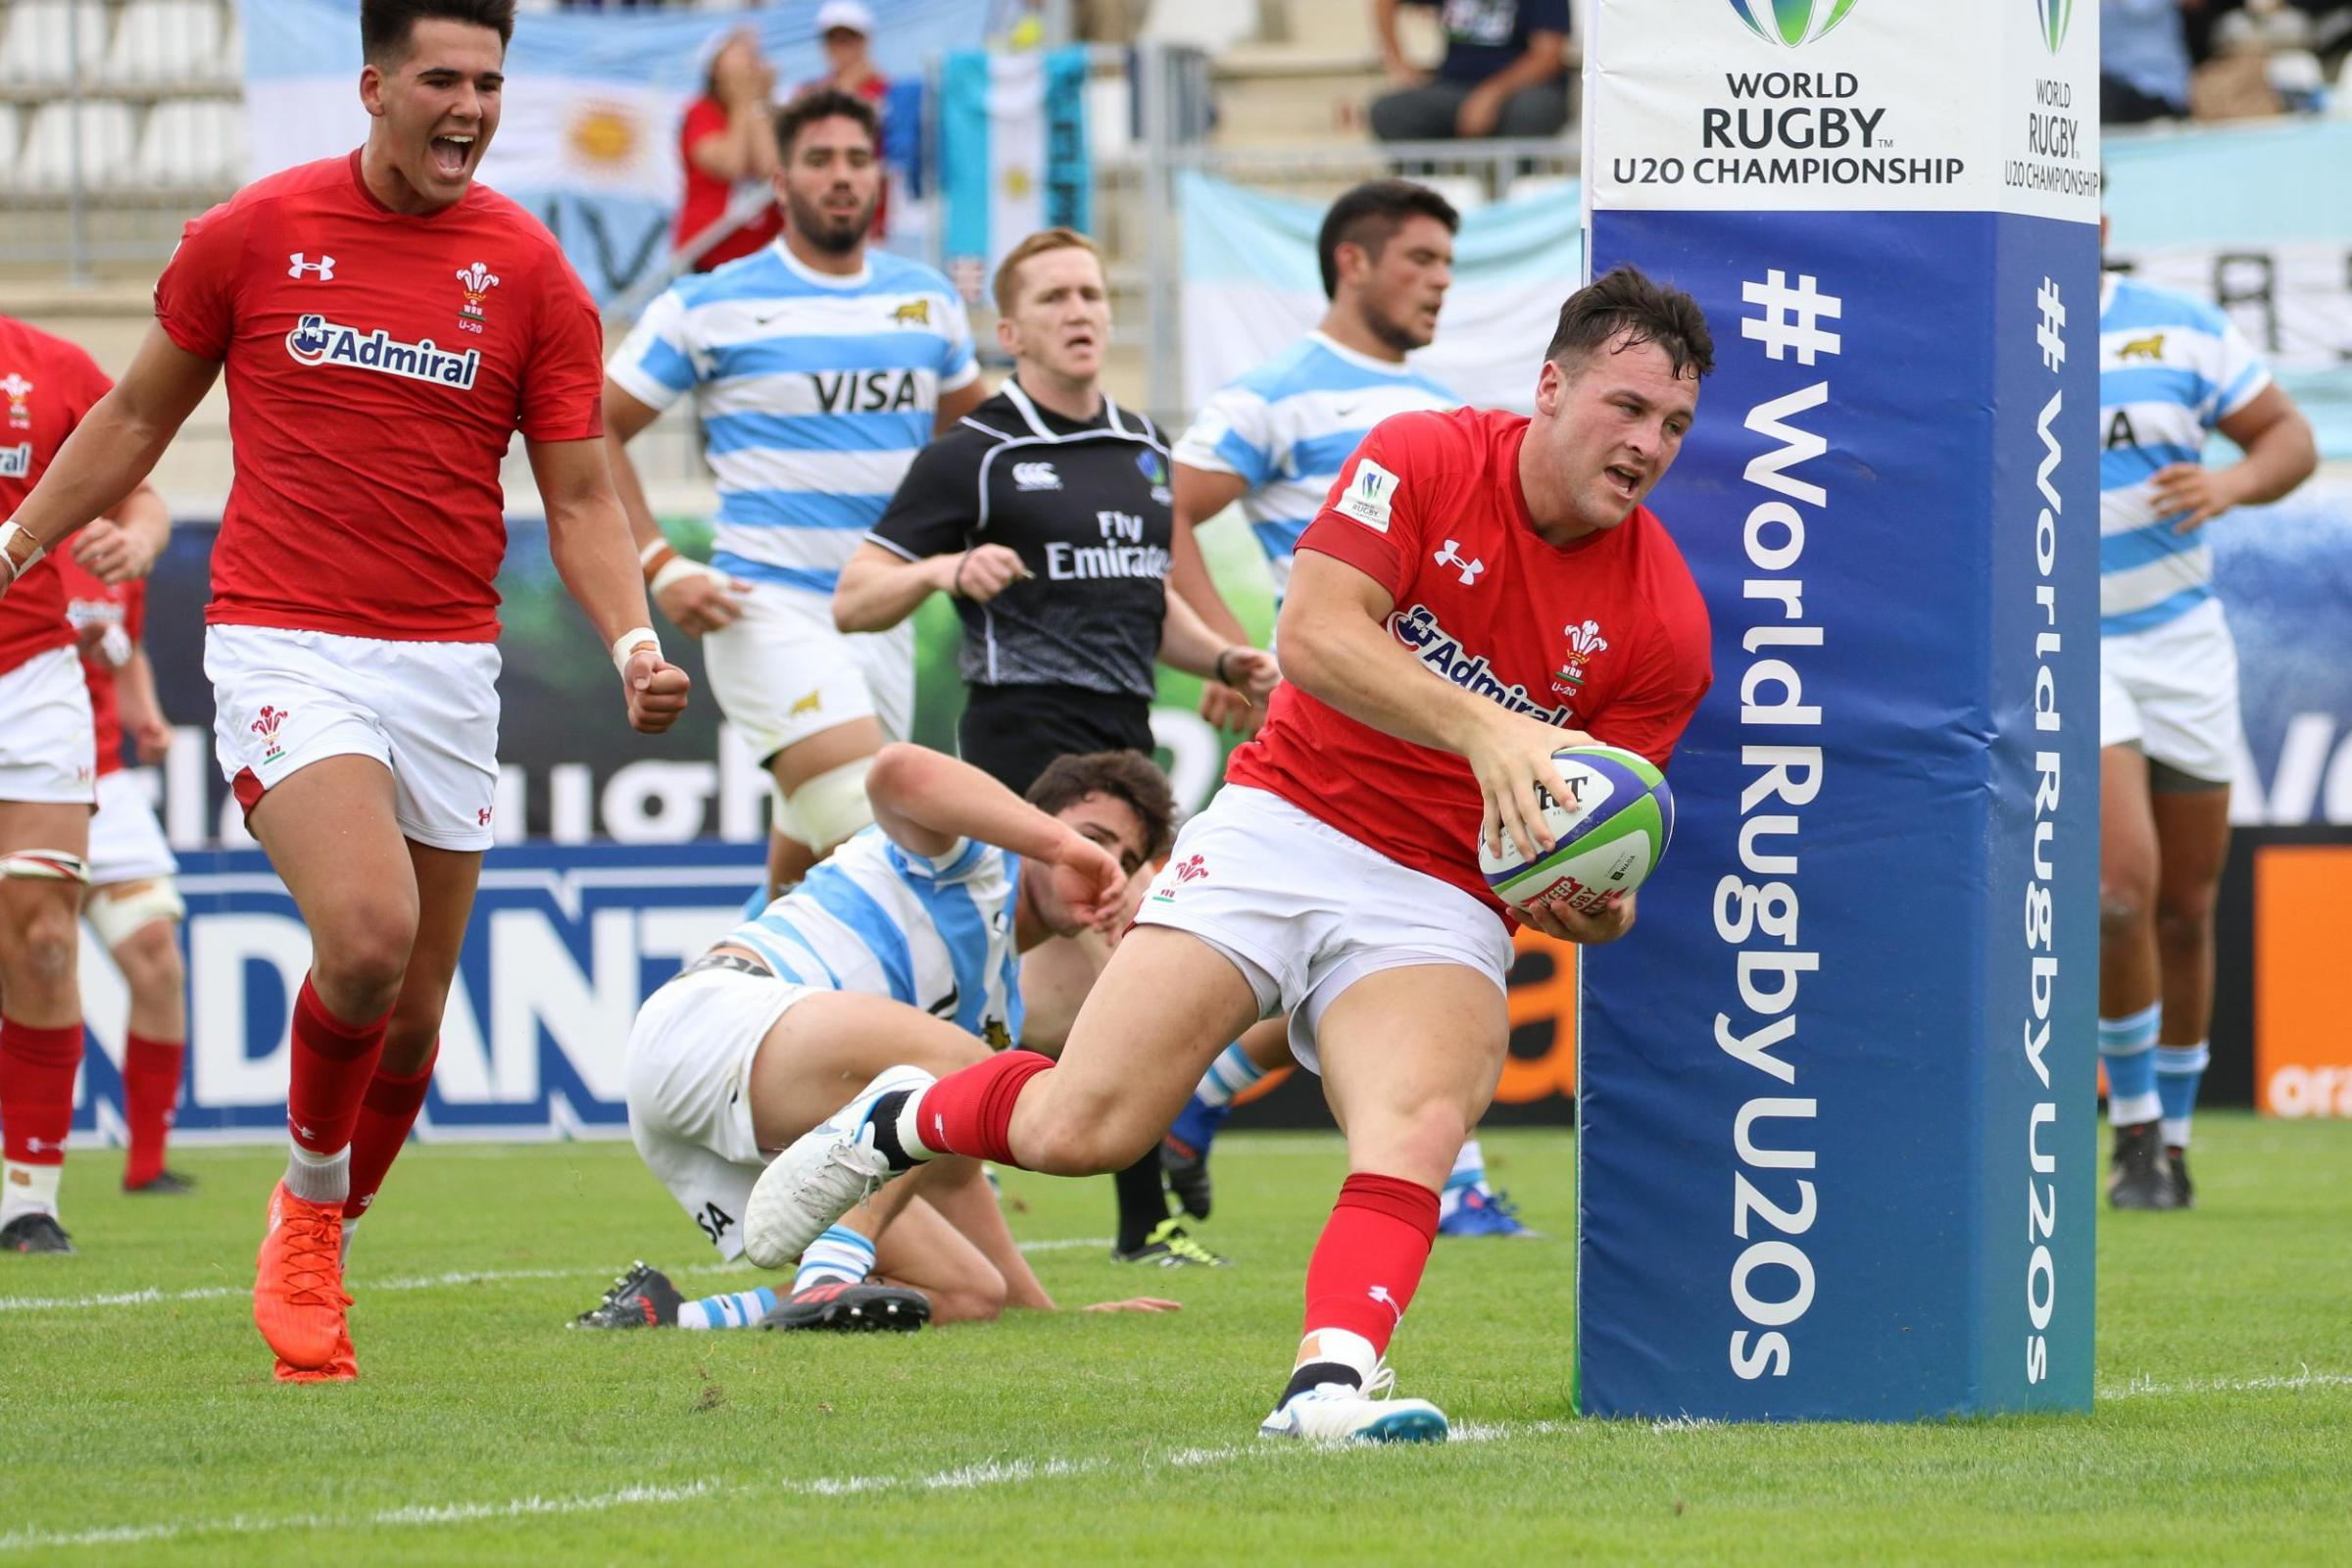 SUMMER TEST: Ryan Conbeer and Wales will face Argentina again in the World Rugby U20 Championship